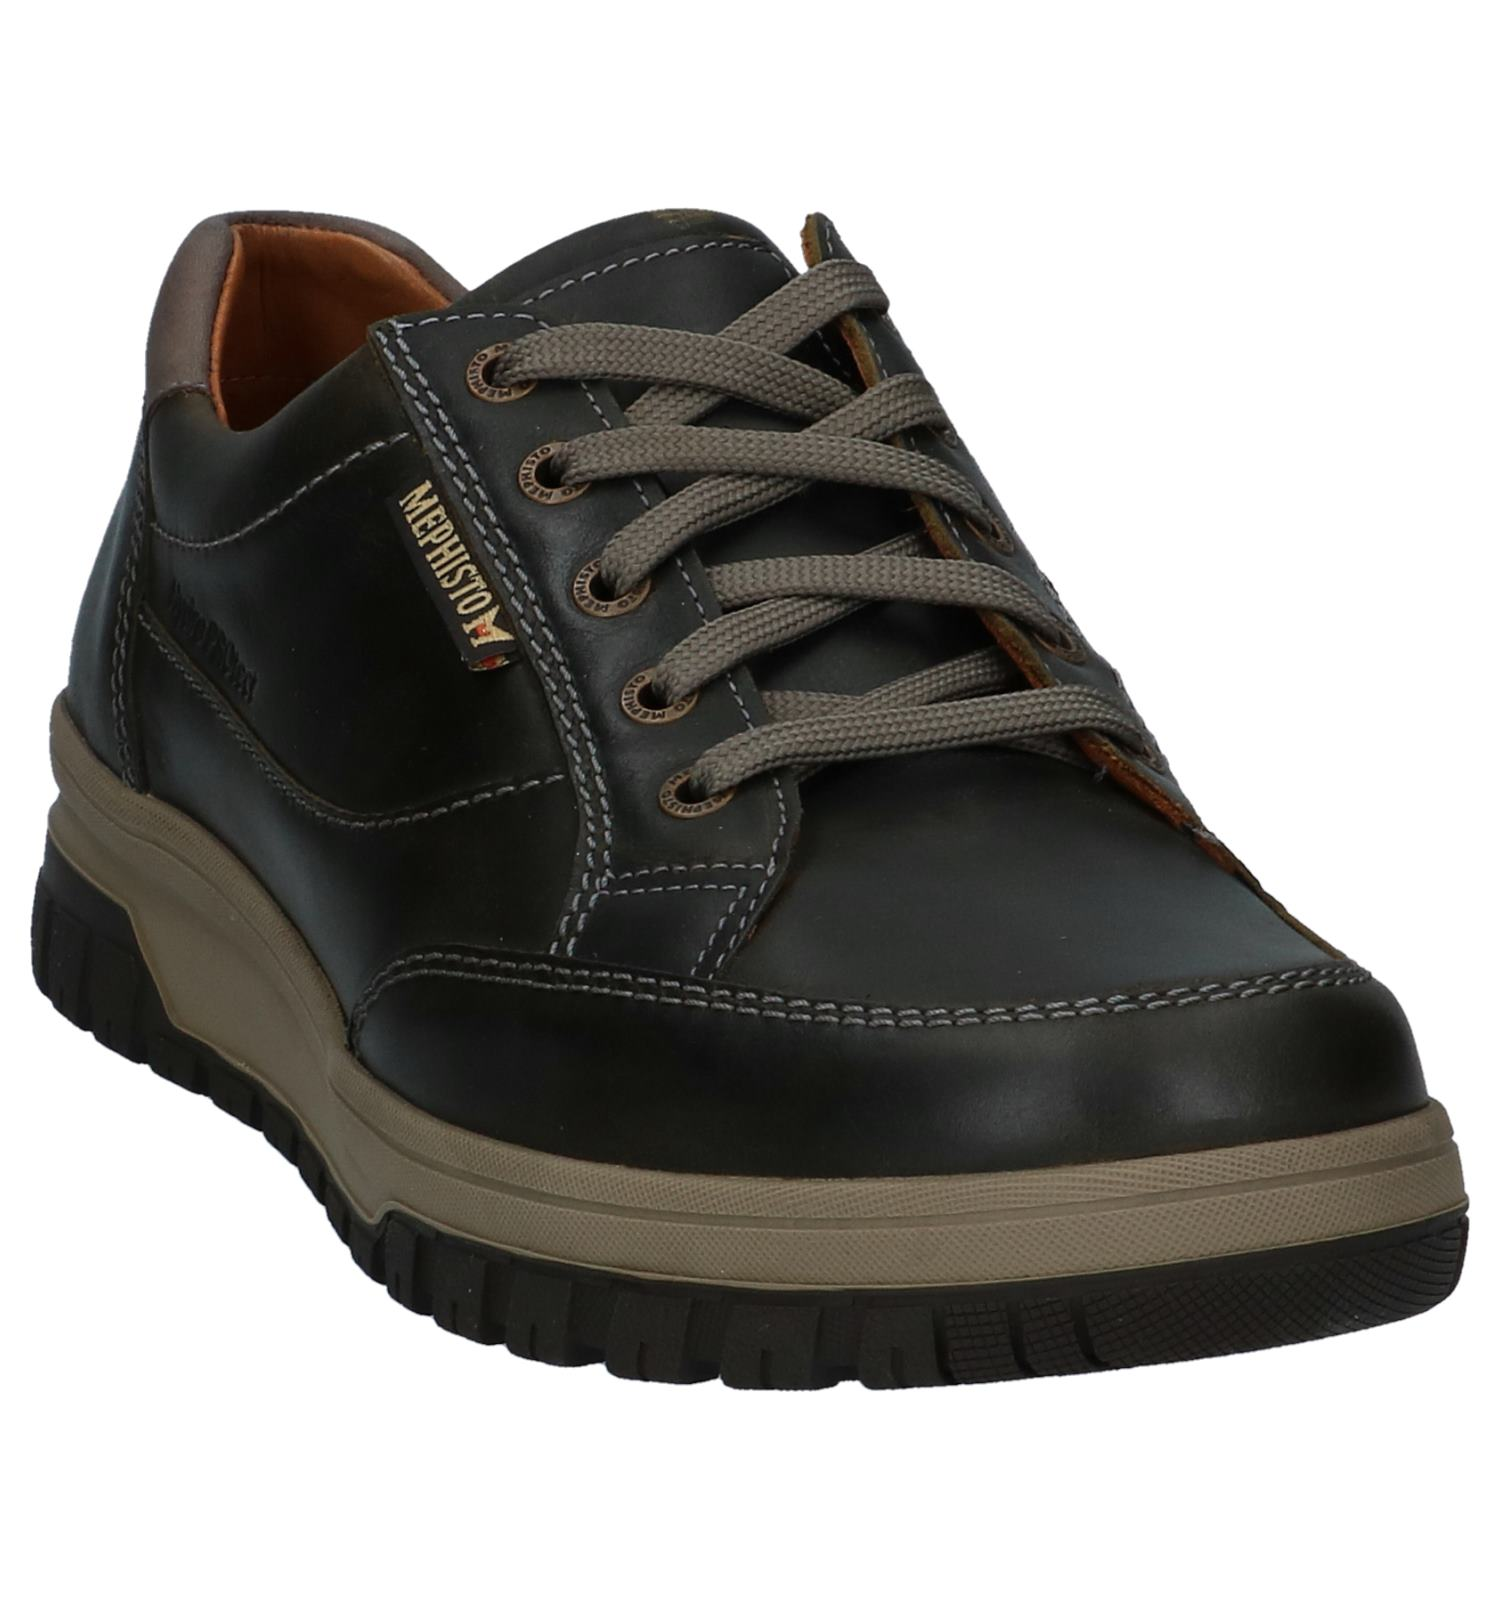 Donkerbruine Torfs Schoenen Mephisto be Hydro Protect Casual q0FxB1p